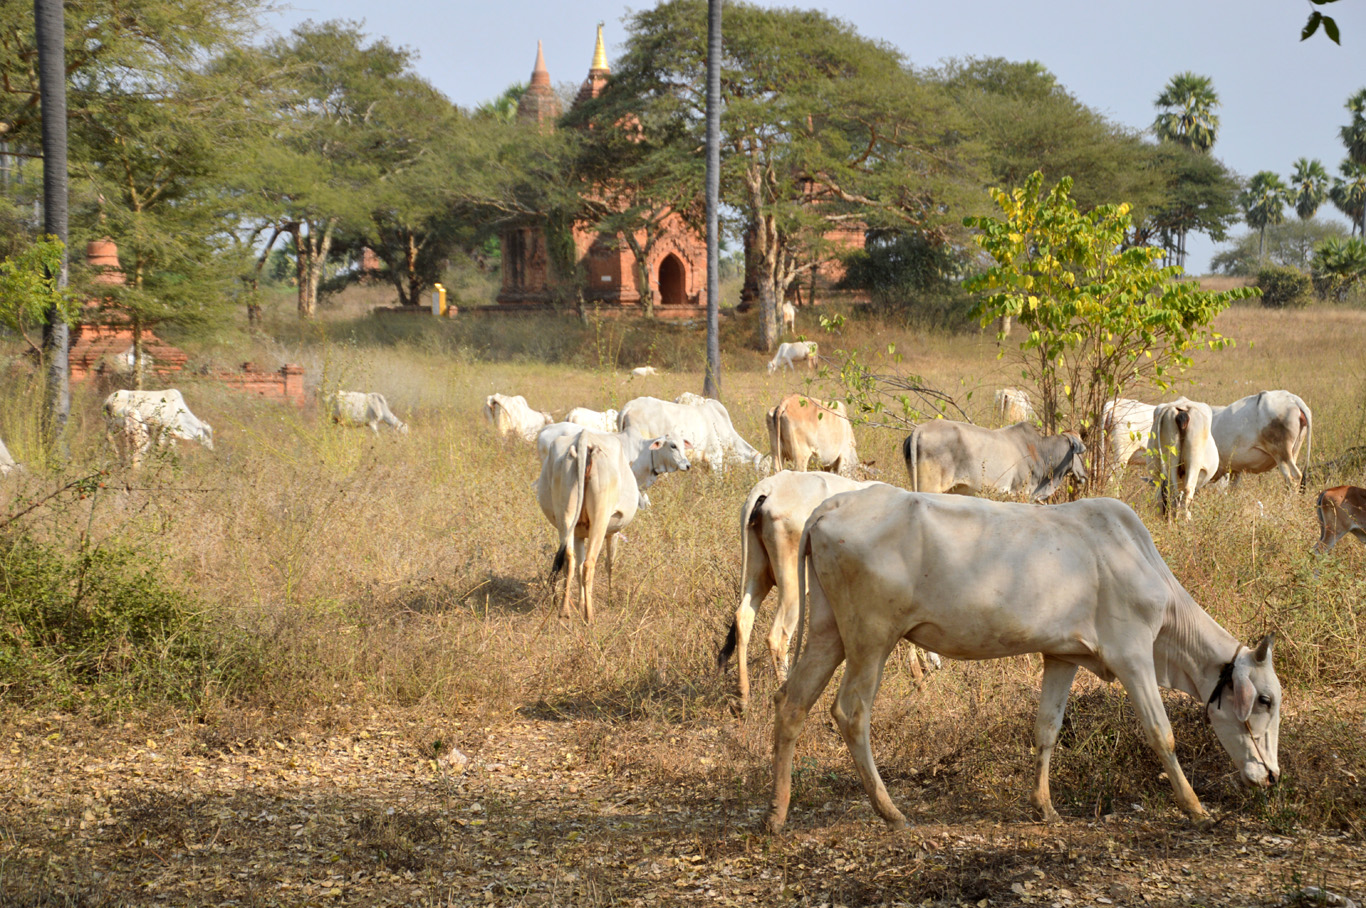 Cattle among the temples